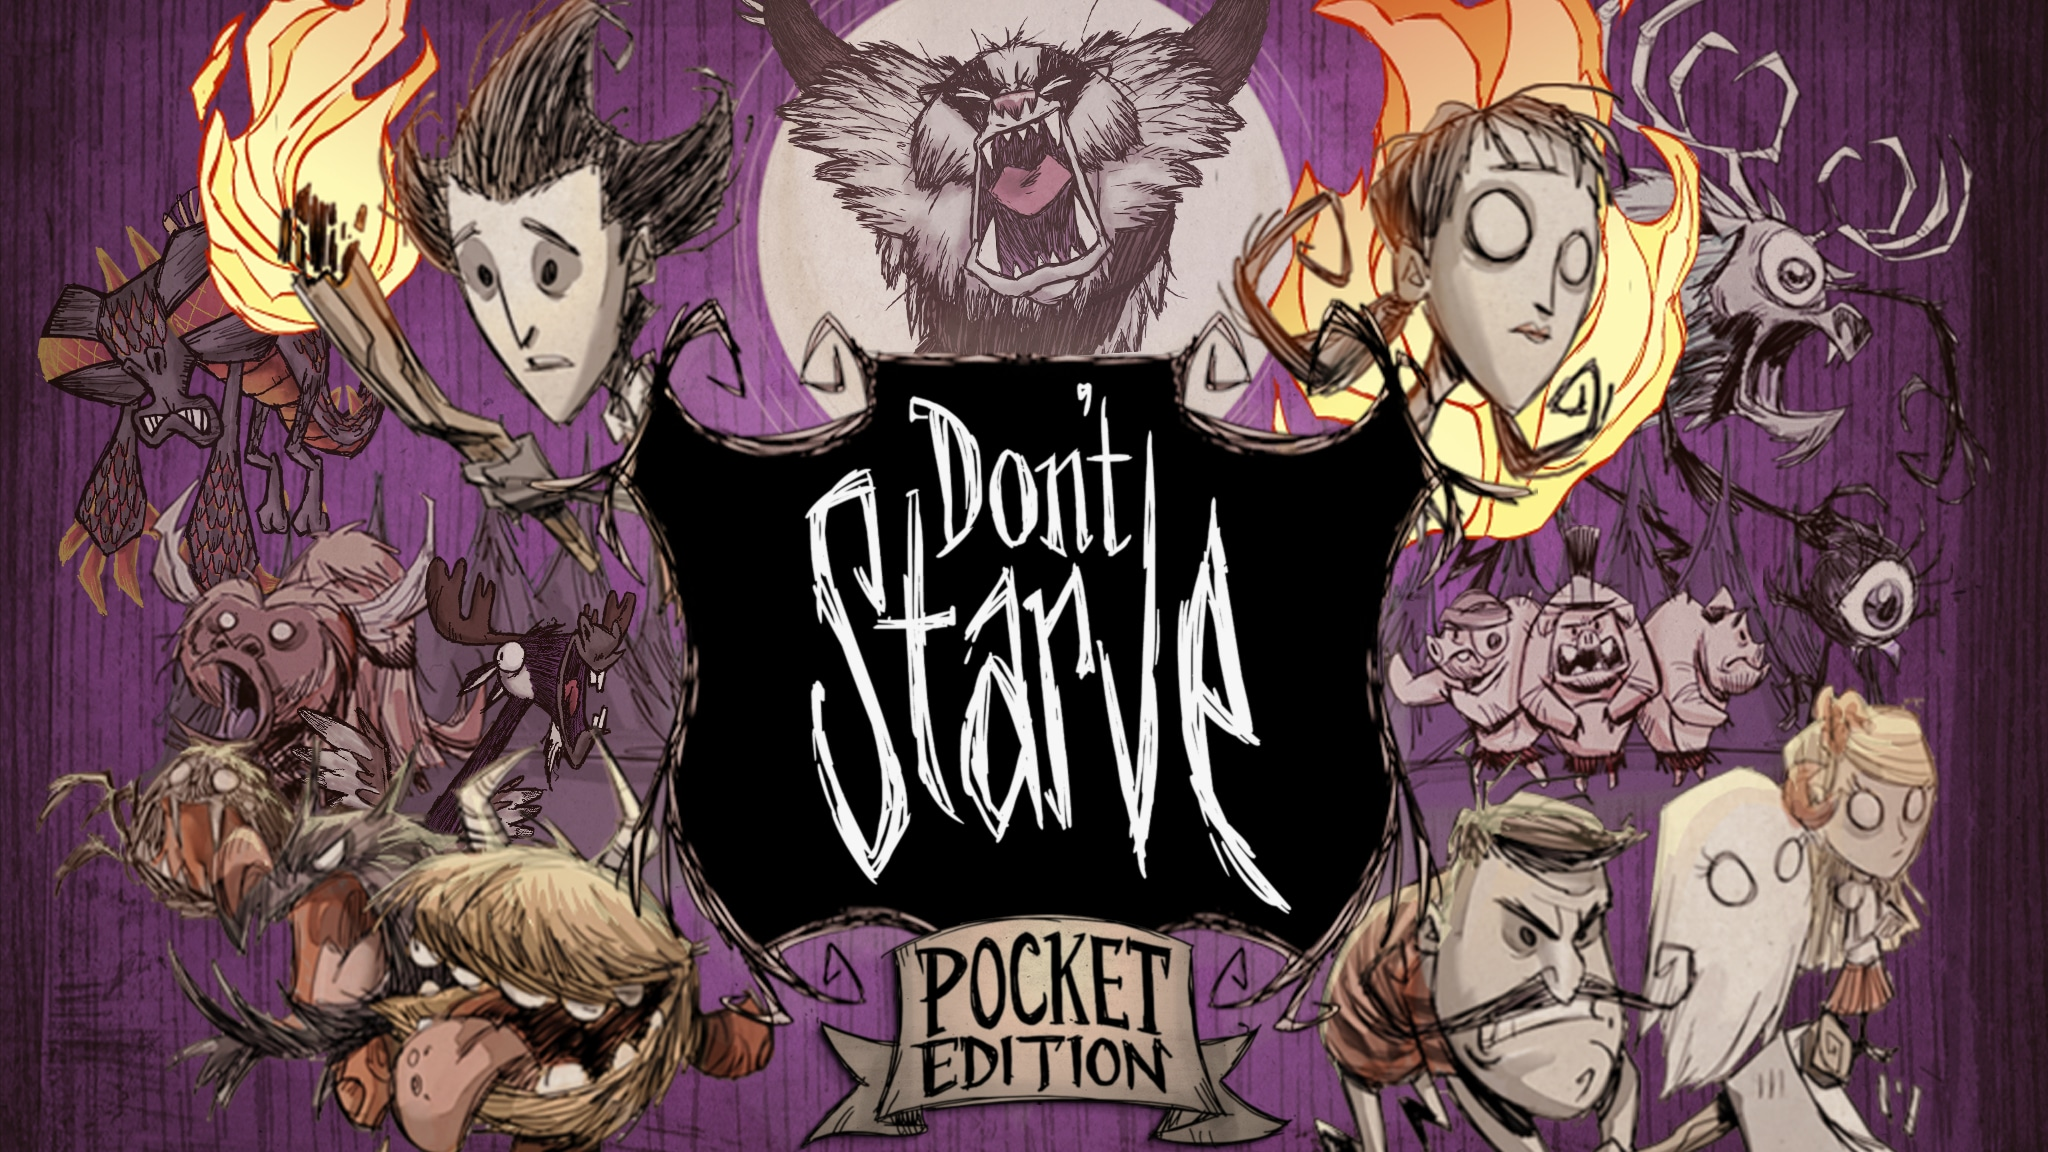 Don't Starve: Pocket Edition arriva sul Play Store in open beta scontato del 20% (foto e video)